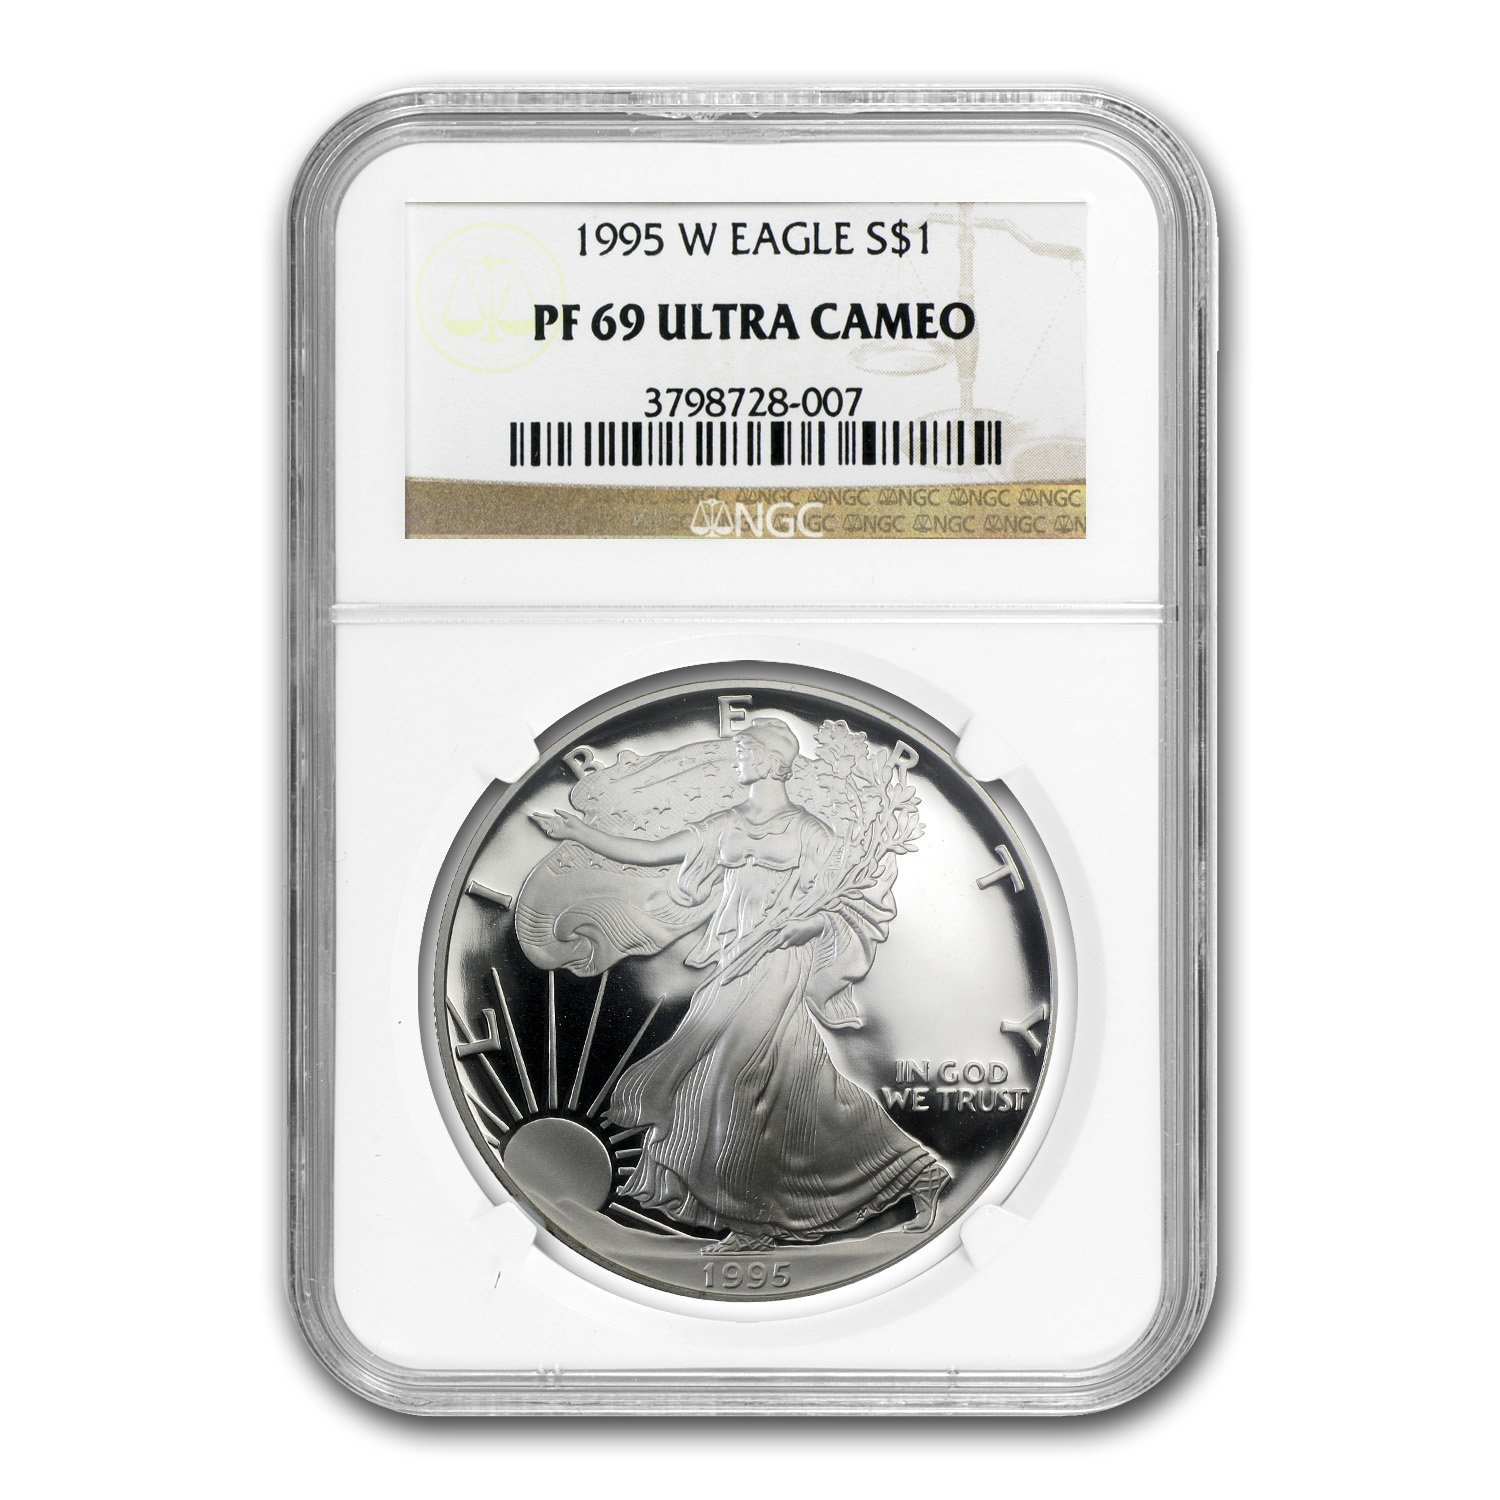 1995-P U.S Silver Eagle Proof Ultra Cameo Coin NGC PF 69 ULTRA CAMEO 1 oz